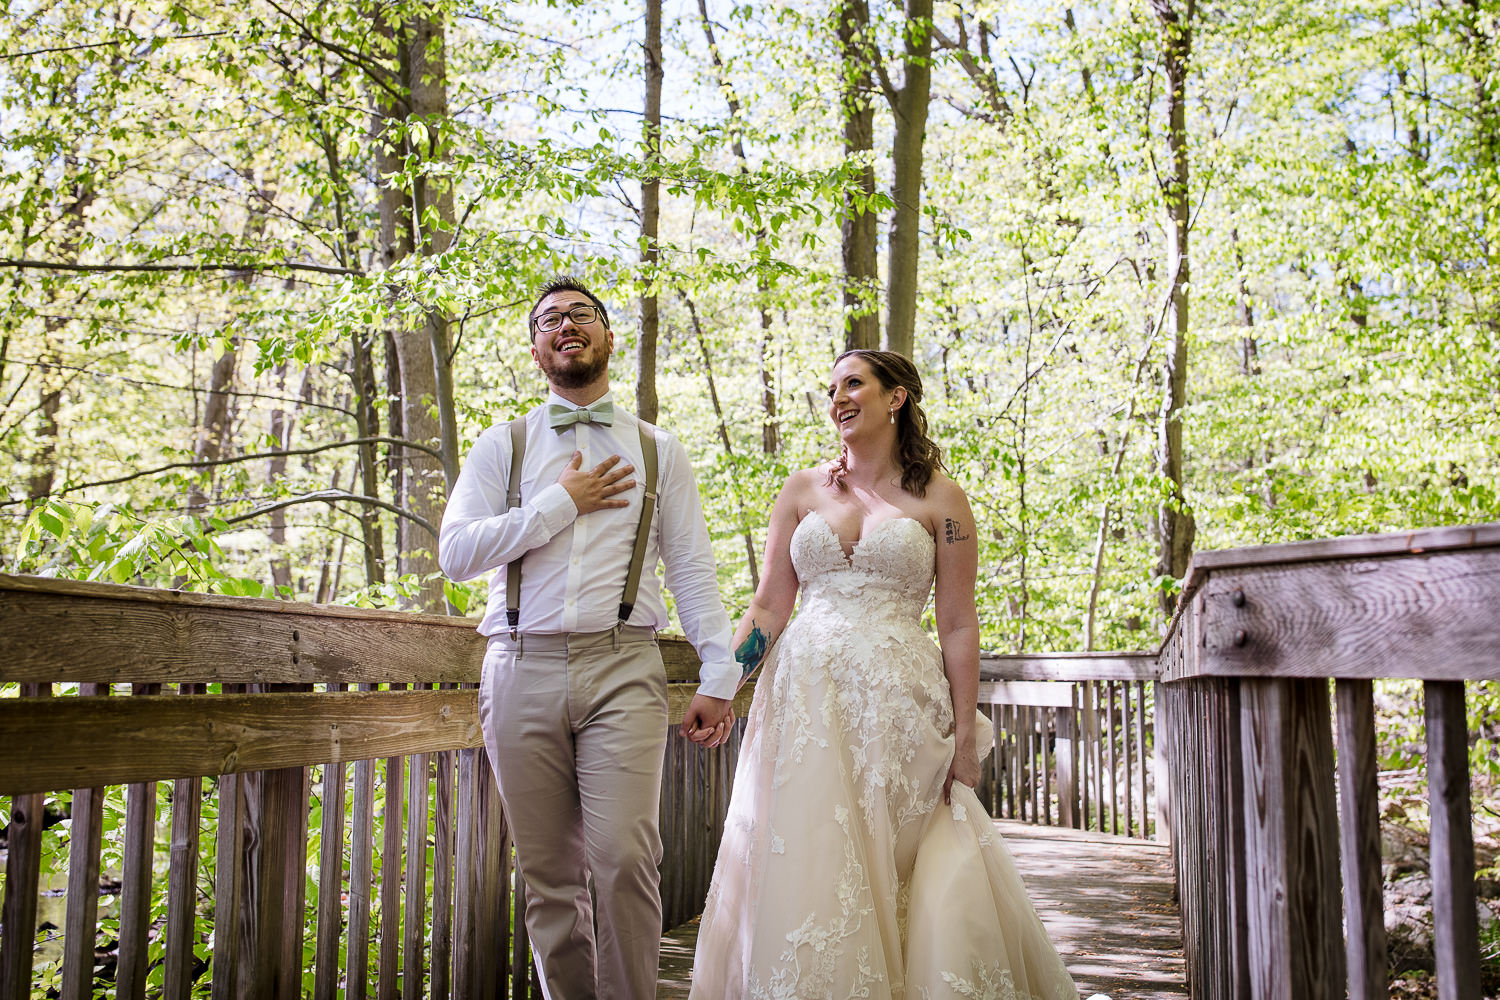 A bride and groom walking in the woods at their Stamford Nature Center wedding in Fairfield County, Connecticut.